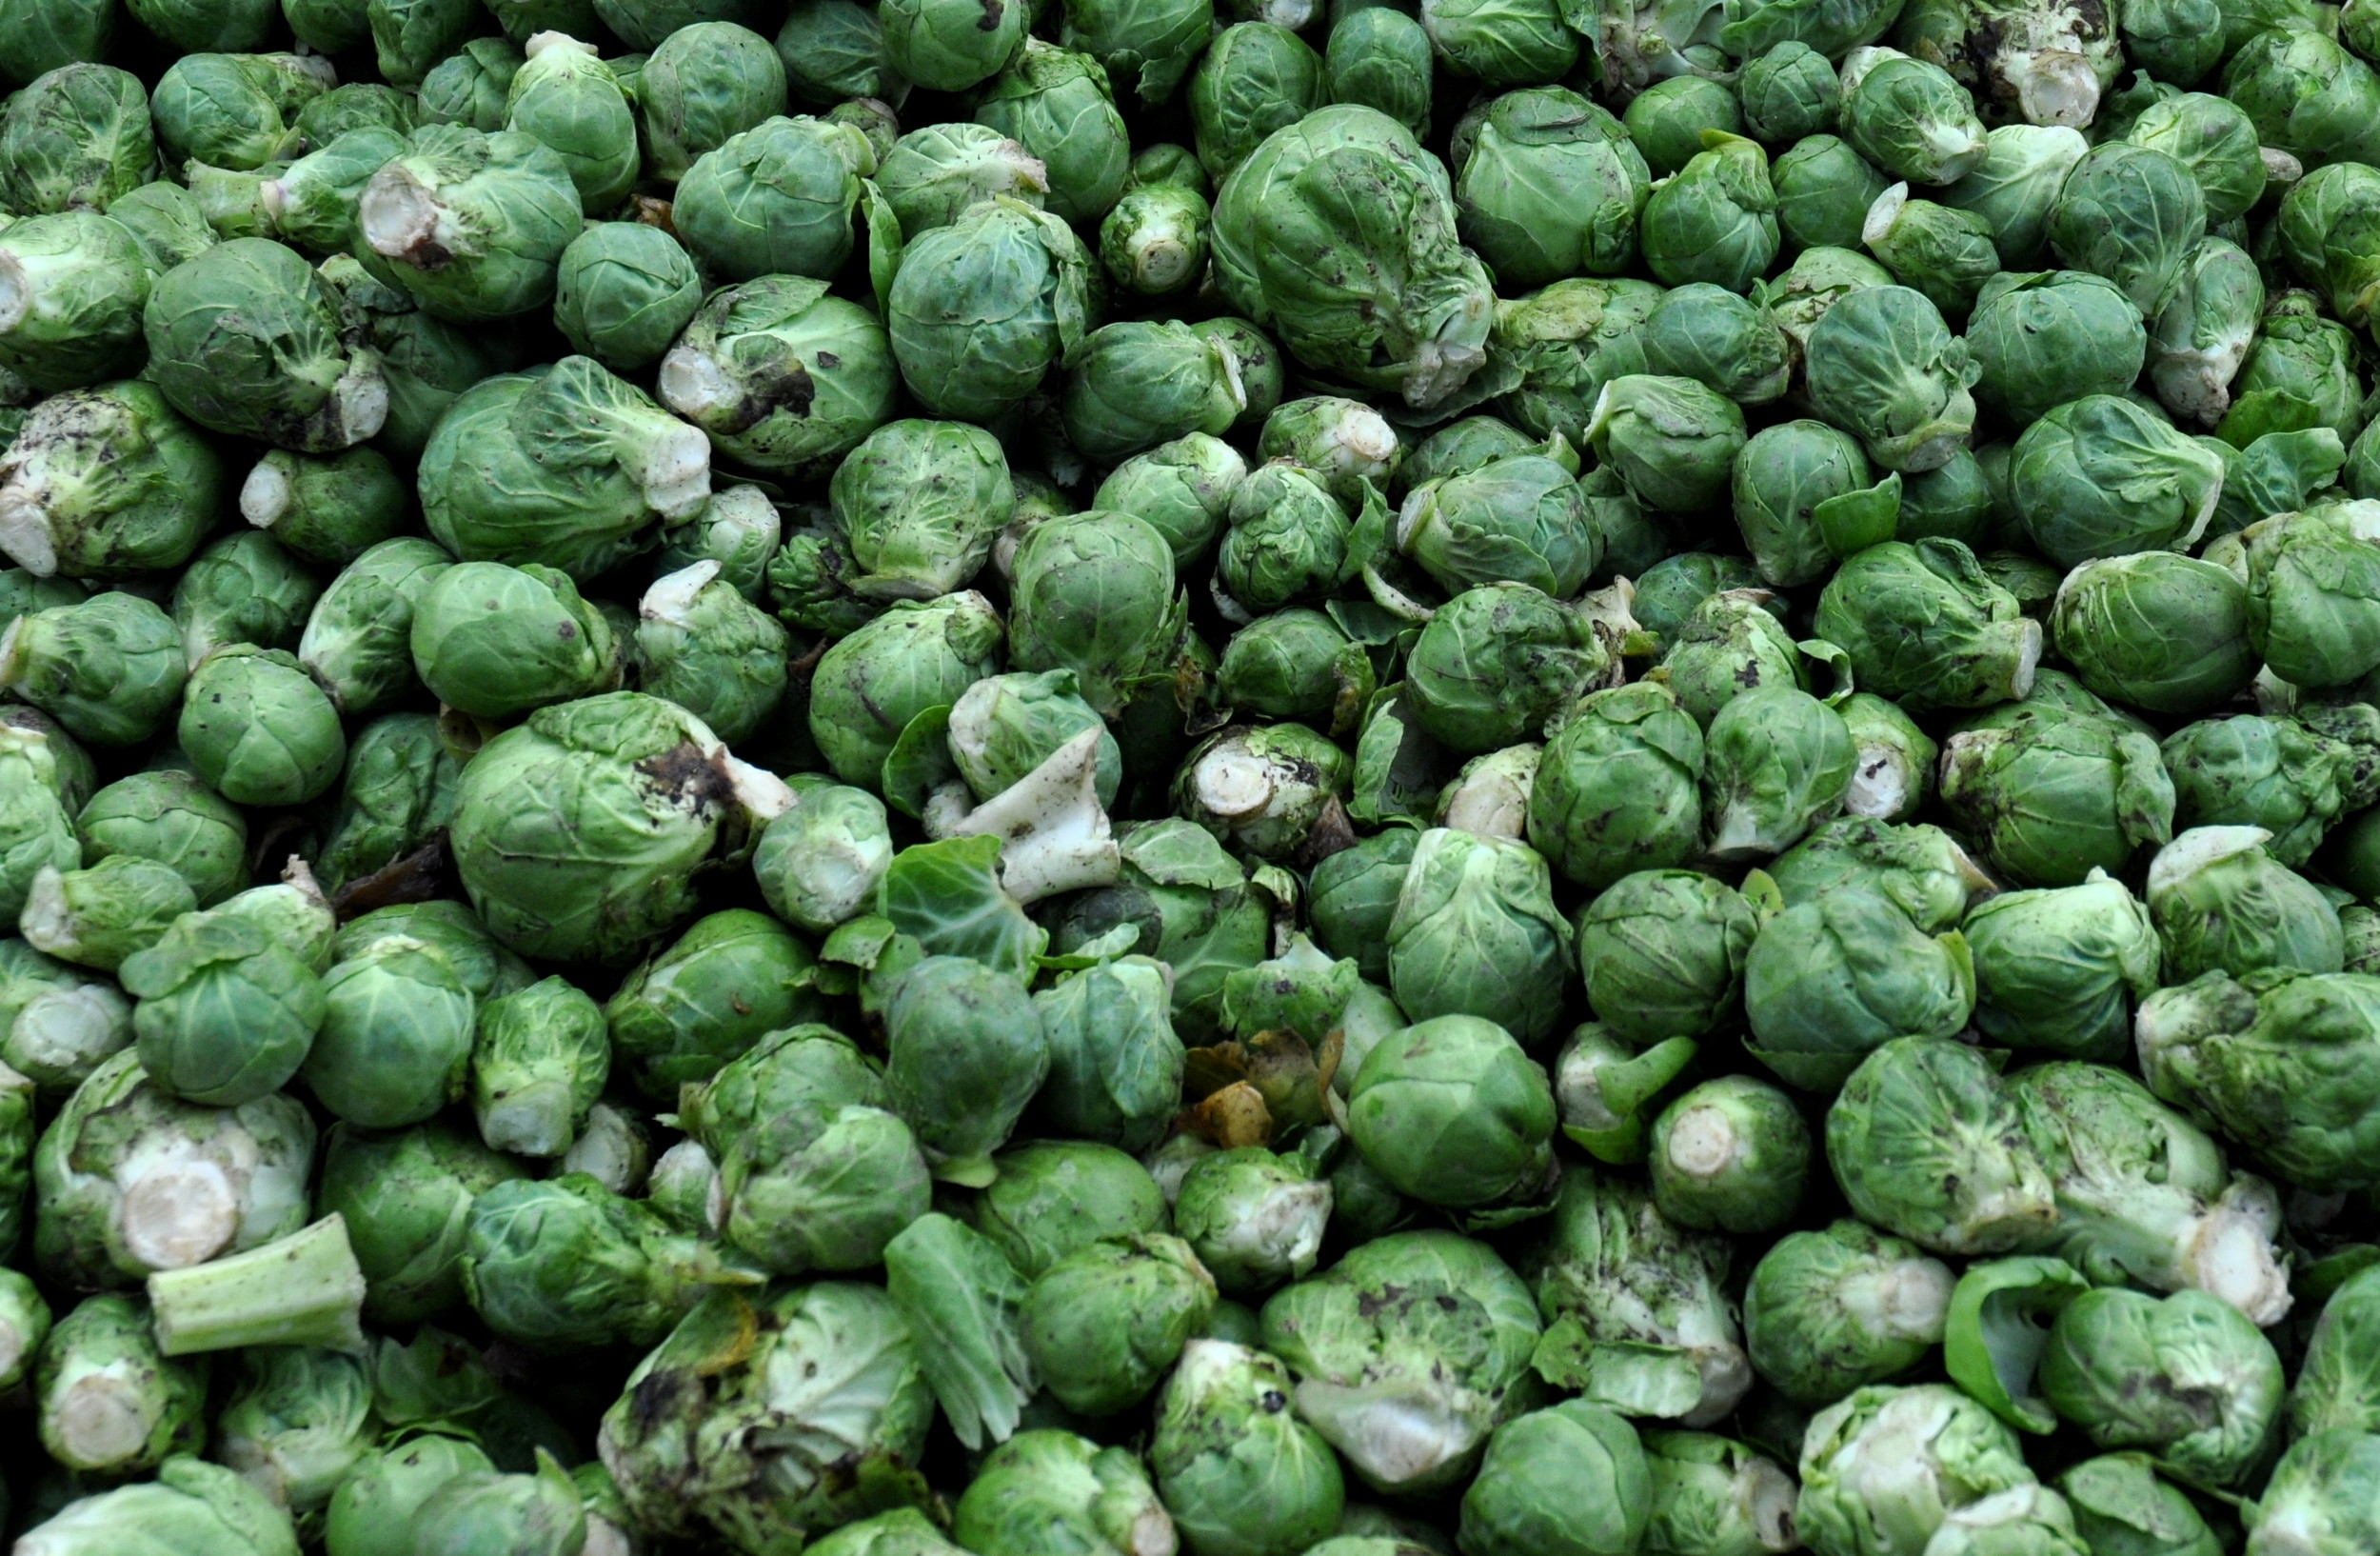 Brussels sprouts from Nash's Organic Produce. Photo copyright 2013 by Zachary D. Lyons.